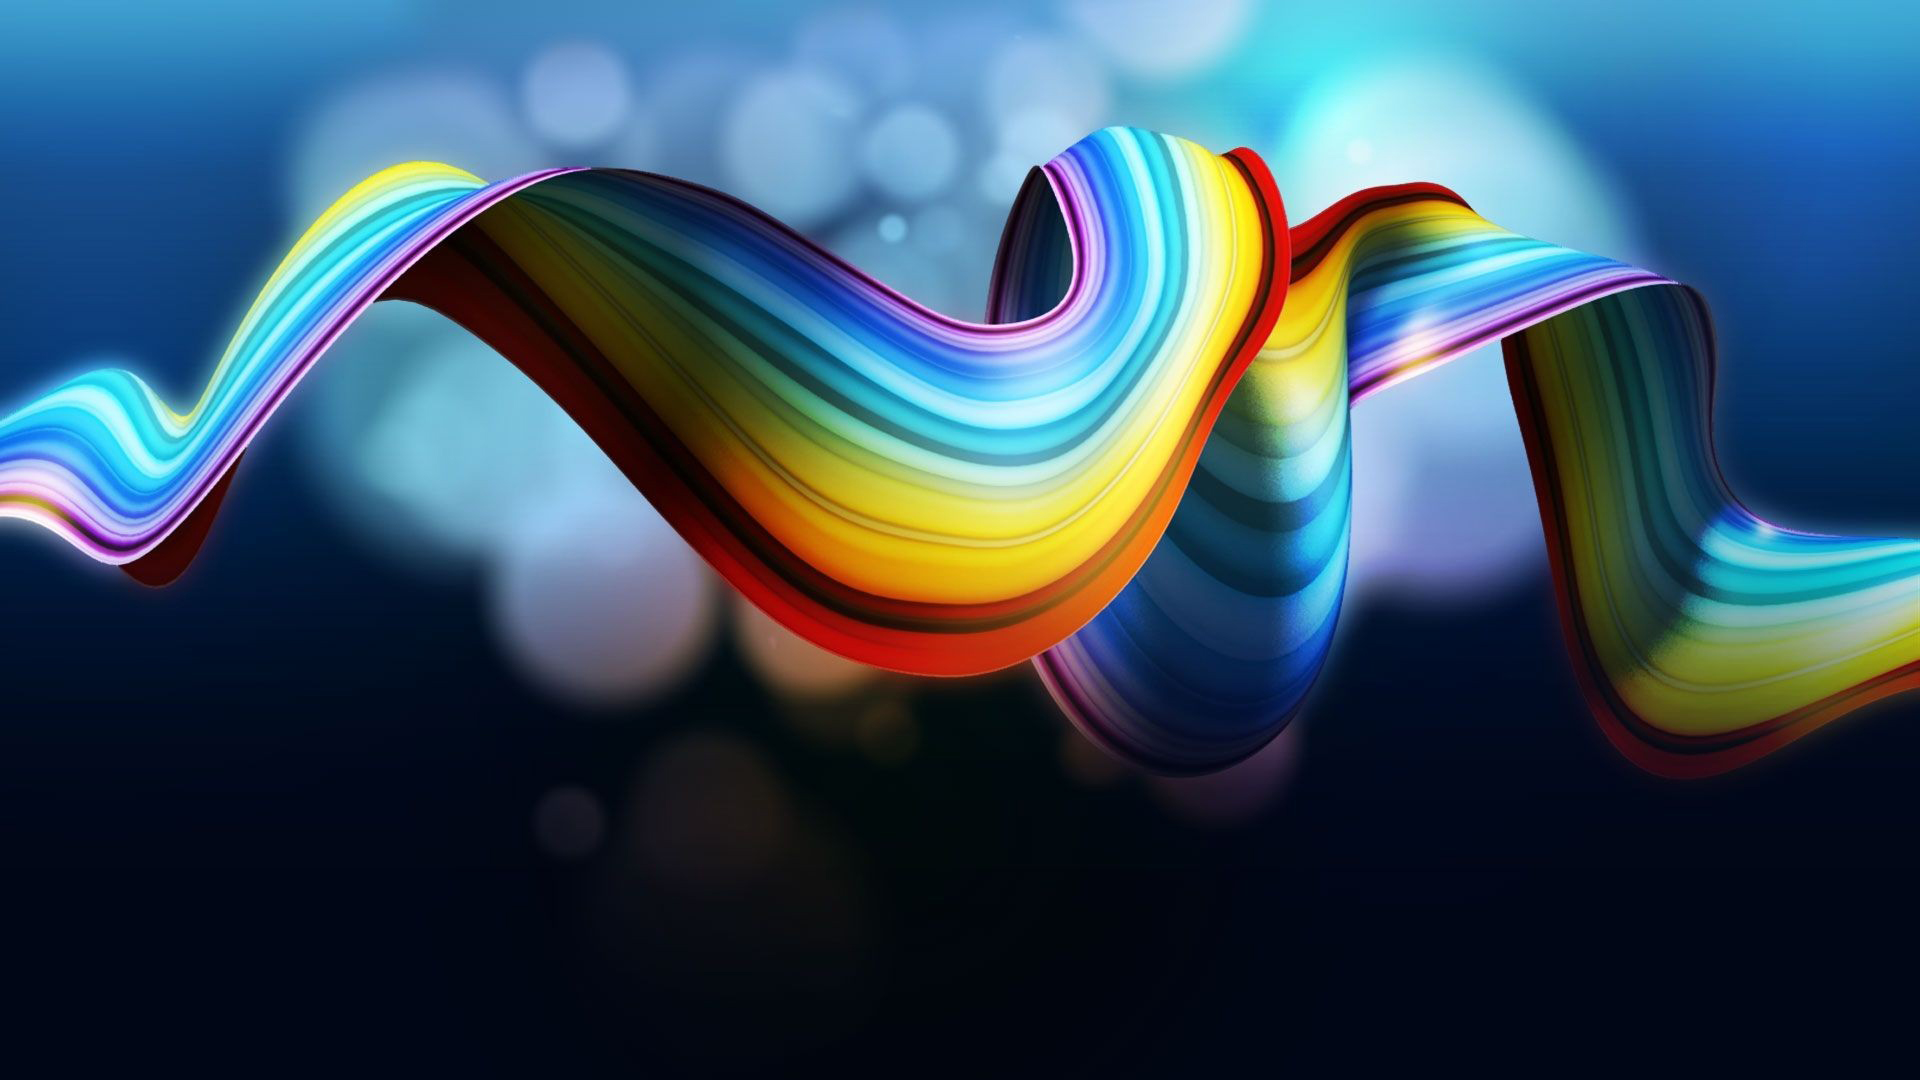 25 hd rainbow wallpapers for 3d wallpaper ideas